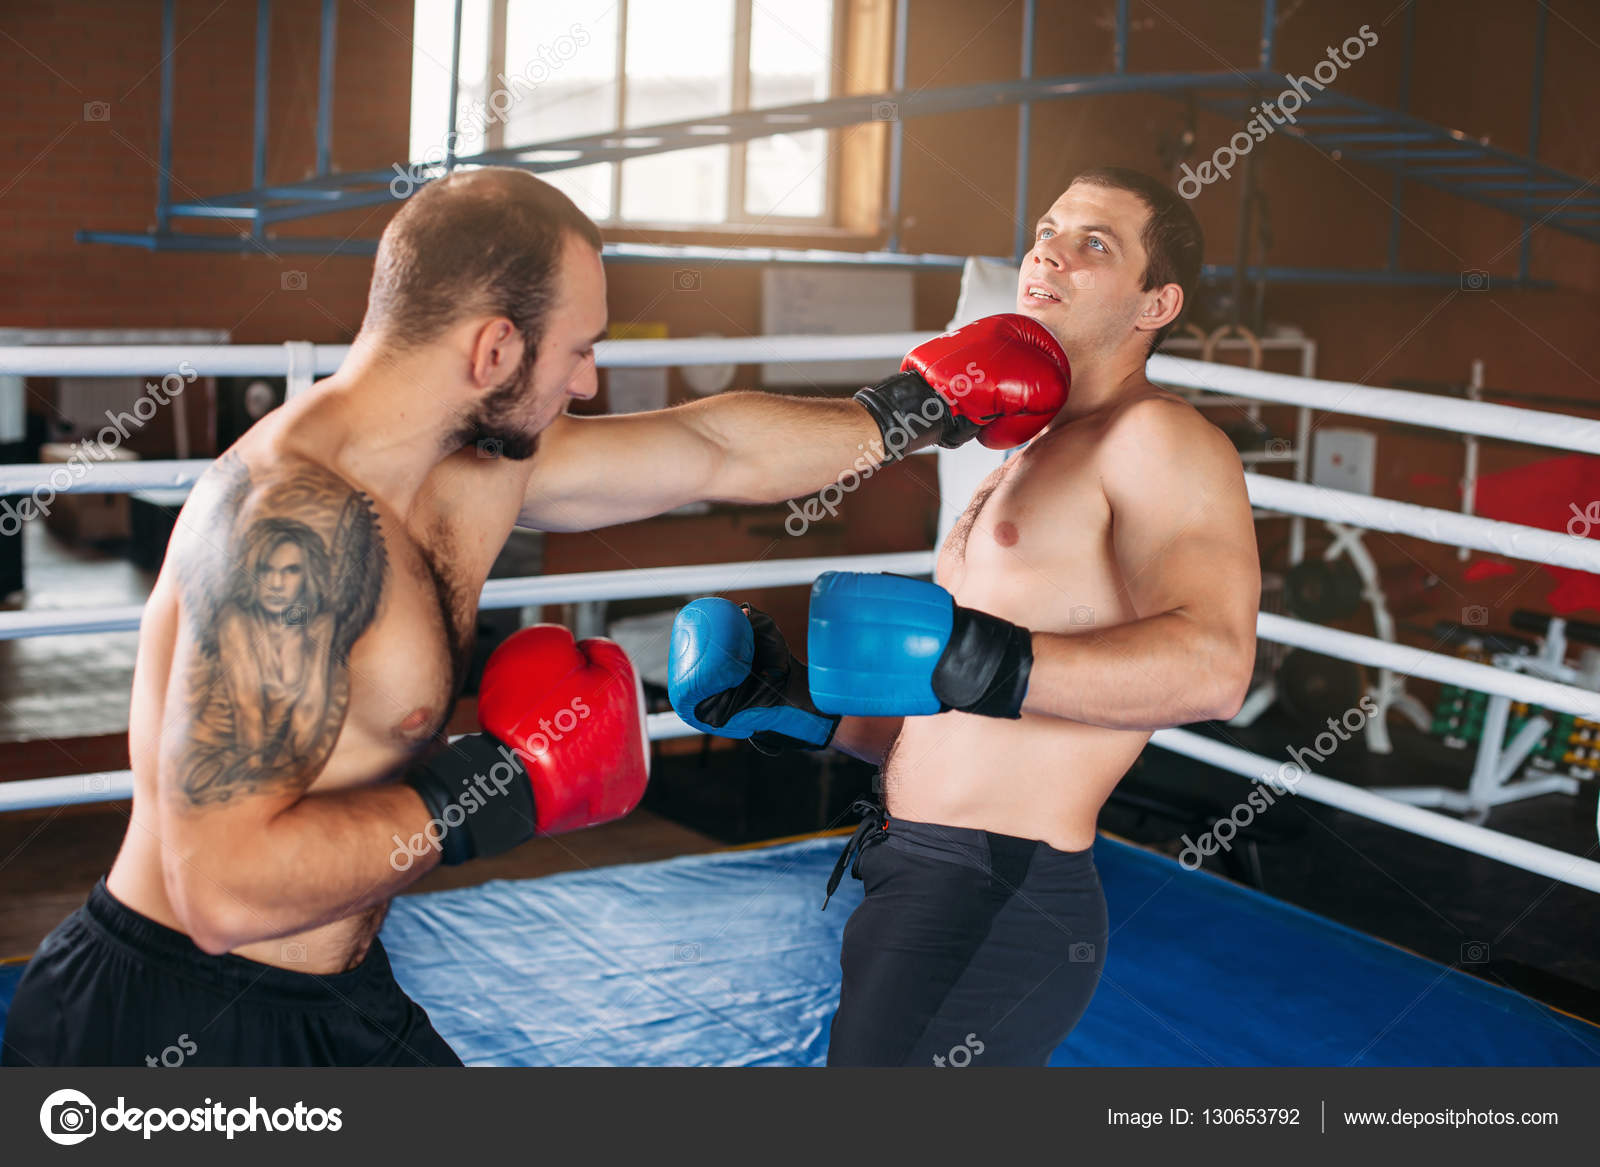 two boxers fighting wiring diagrams \u2022two boxers fighting stock photo nomadsoul1 130653792 rh depositphotos com two boxers fighting cartoon picture of